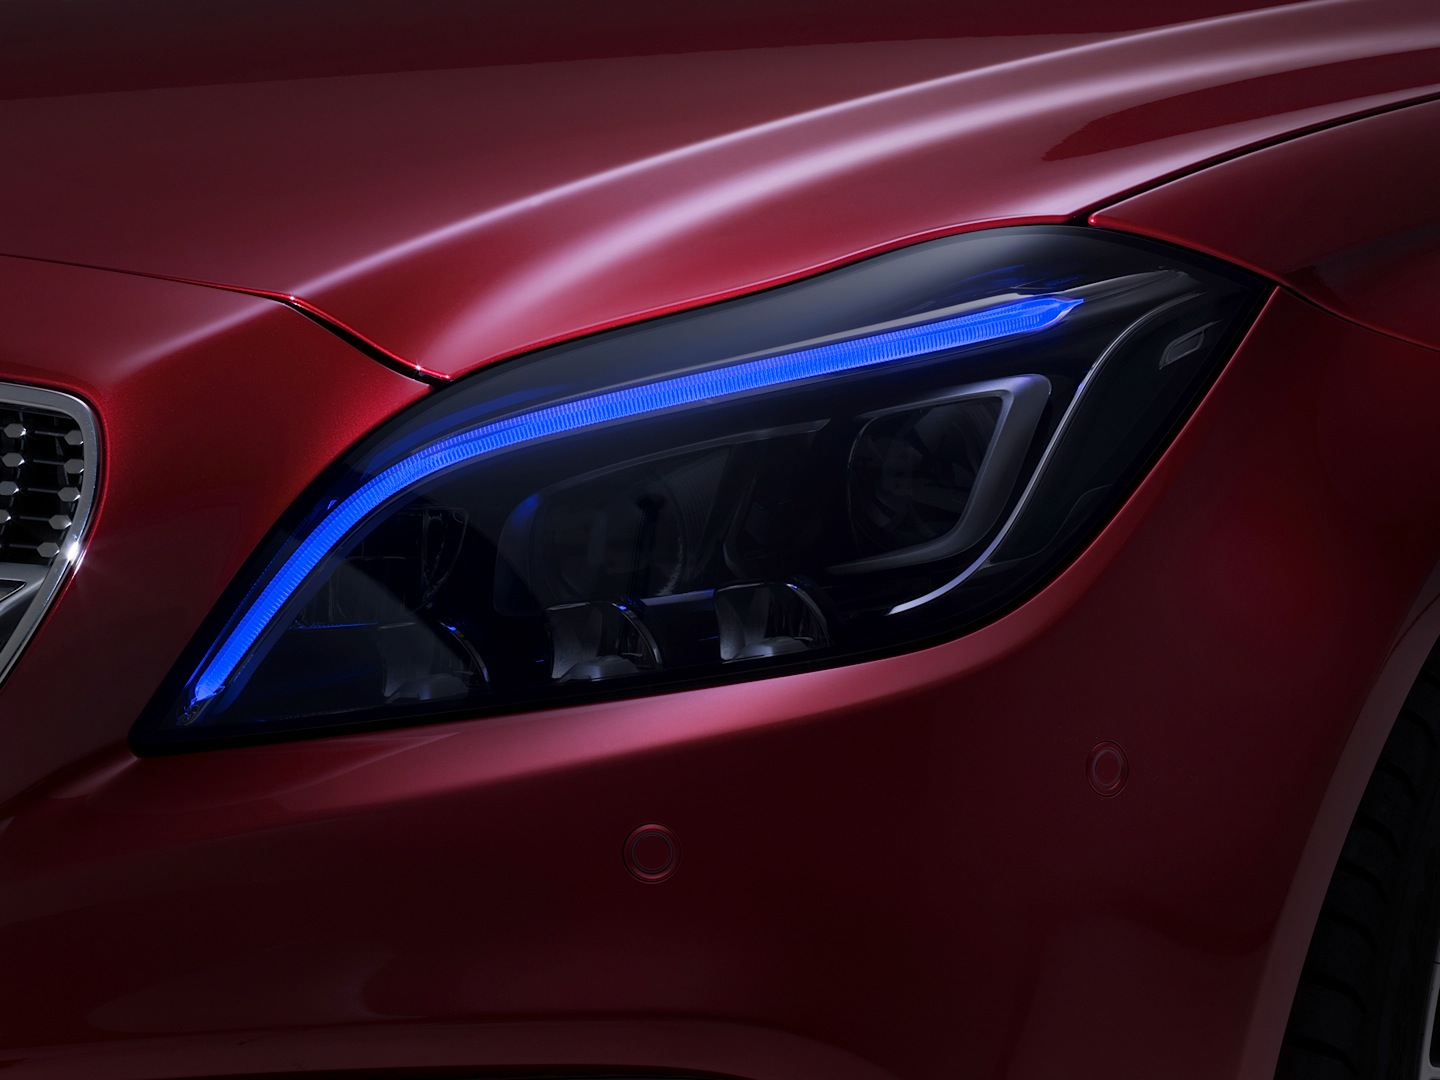 Multibeam LED Lights on CLS (C218) Facelift Previewed